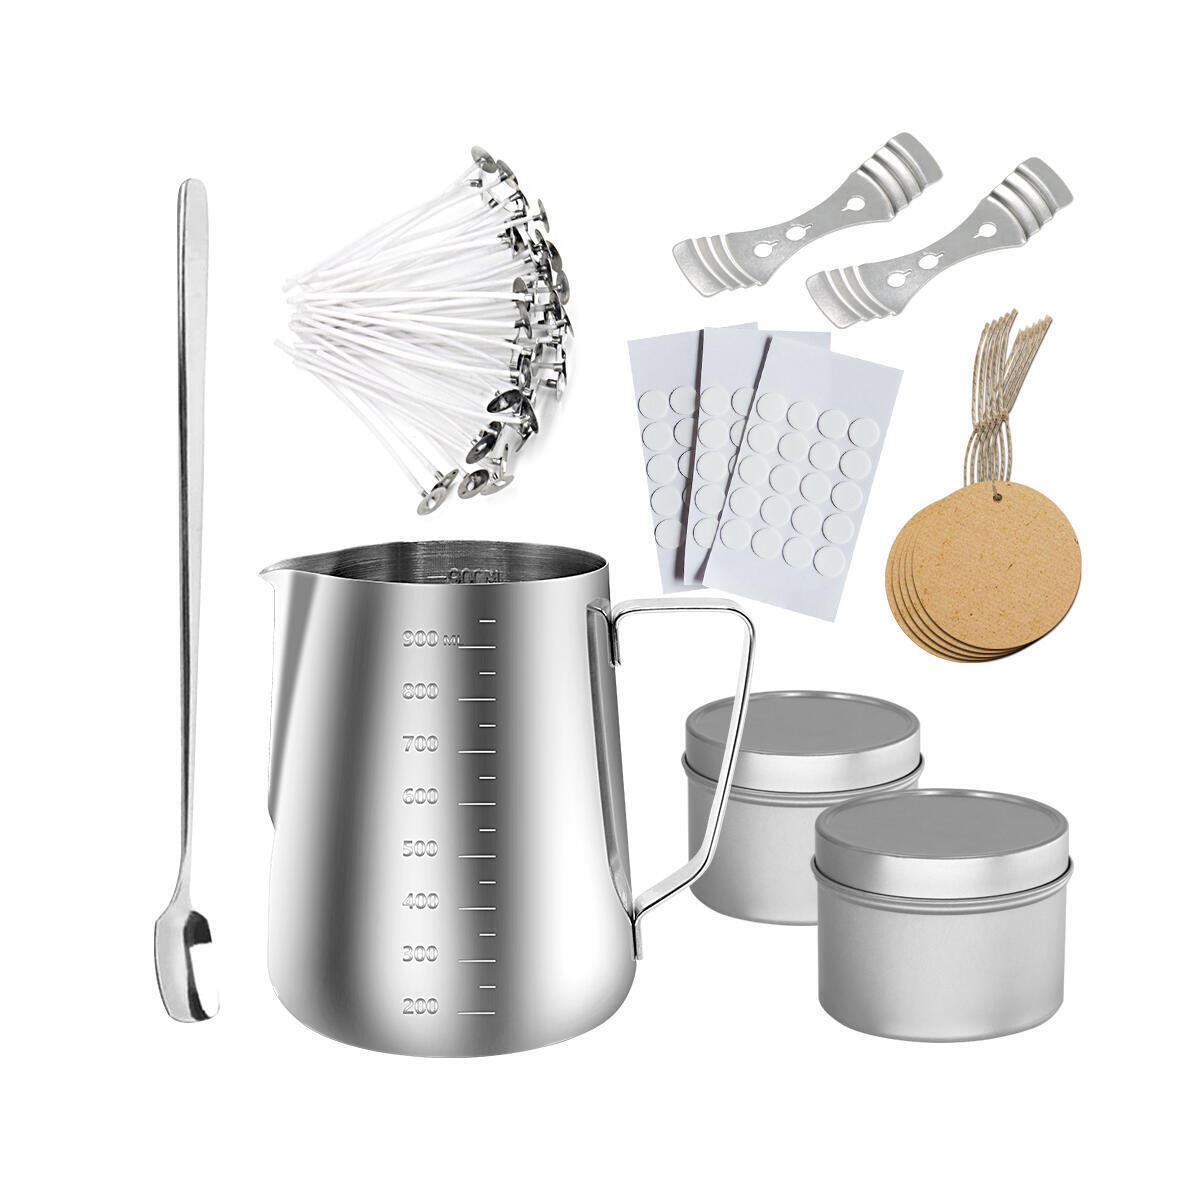 Candle Making Kit- KissBear 126 PCS DIY Candle Making Supplies with 900ml Candle Make Pouring Pot Candle Wicks Wicks Sticker 3-Hole Candle Wick Holder Candle Box Spoon and Tag for DIY Candles